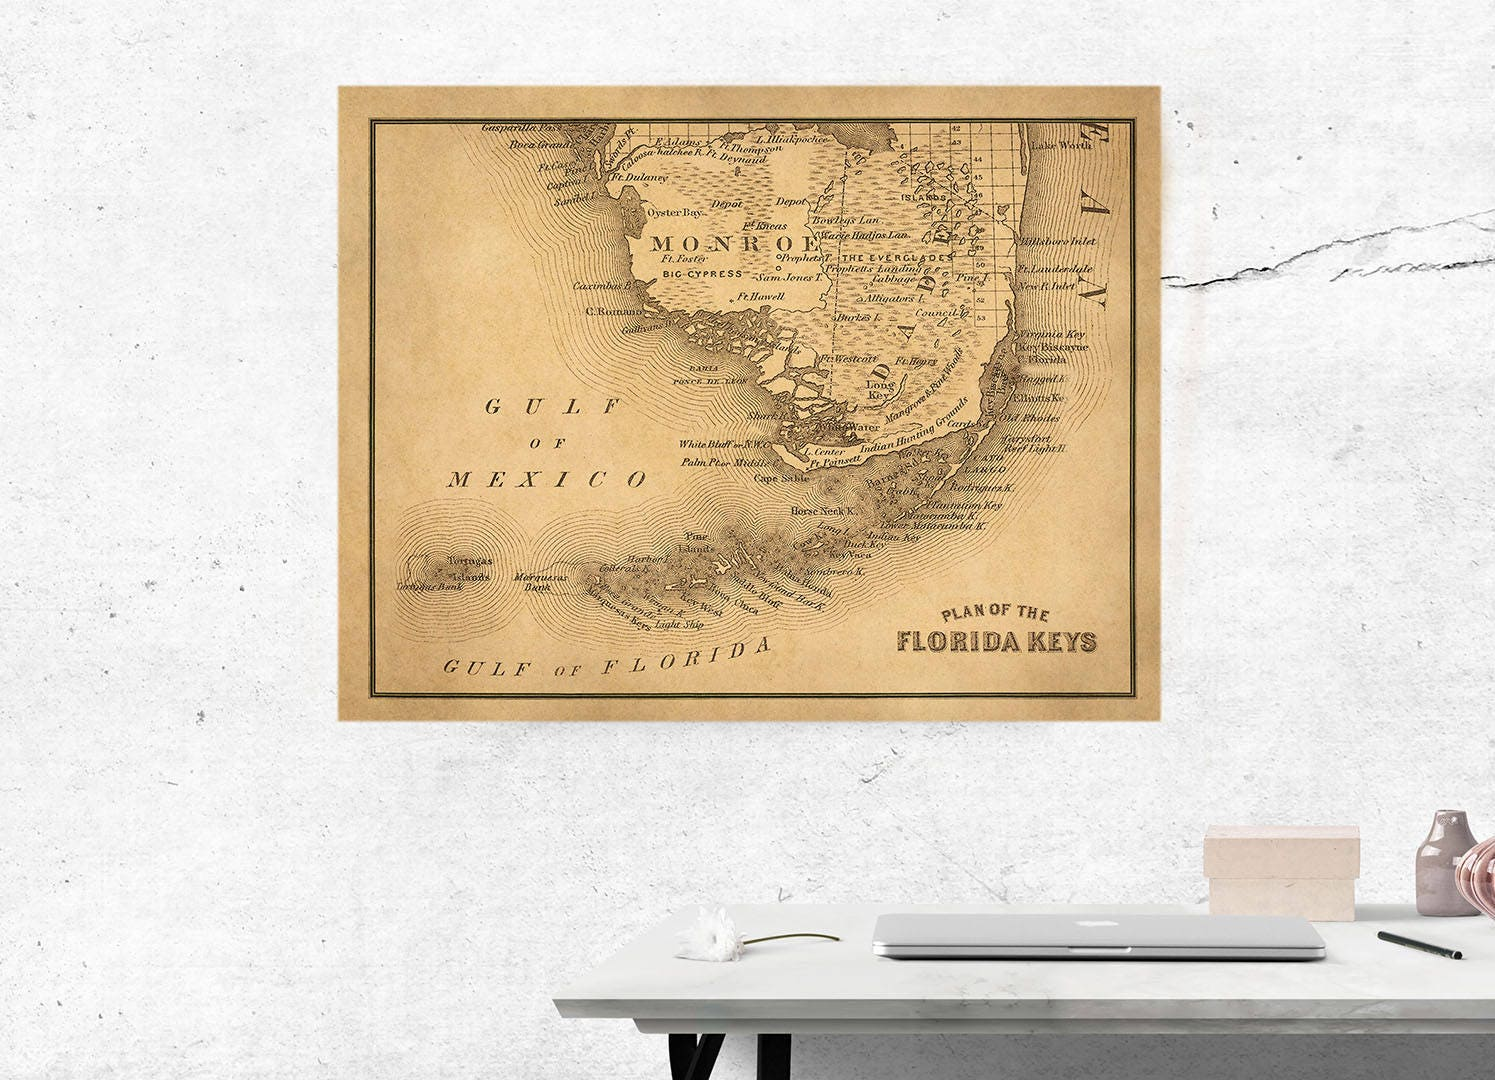 photo relating to Printable Map of Key West referred to as Higher Basic Map Of Most important West and South Florida, 2 conclude